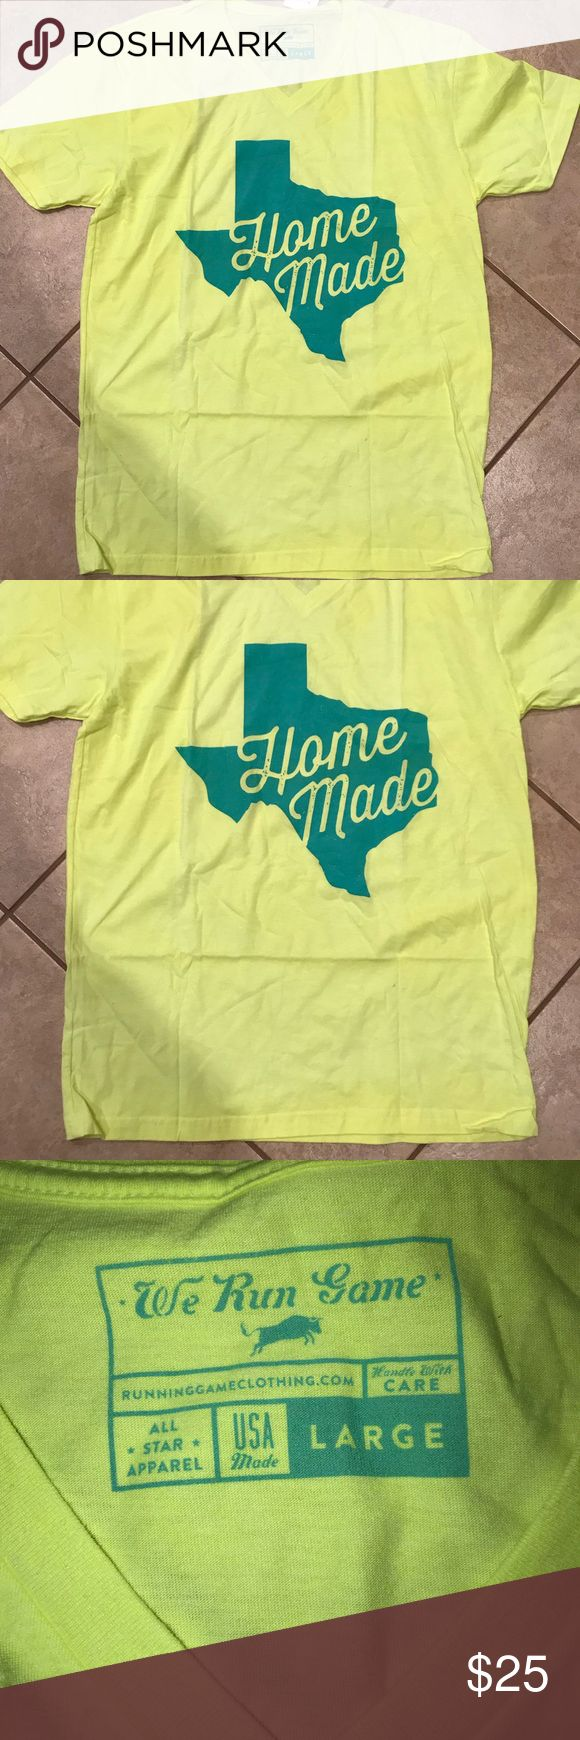 Texas Homemade short sleeved T-shirt Bright yellow short sleeved v-neck shirt with green writing. The 3rd picture shows the difference in bright green and bright yellow shirts. Tops